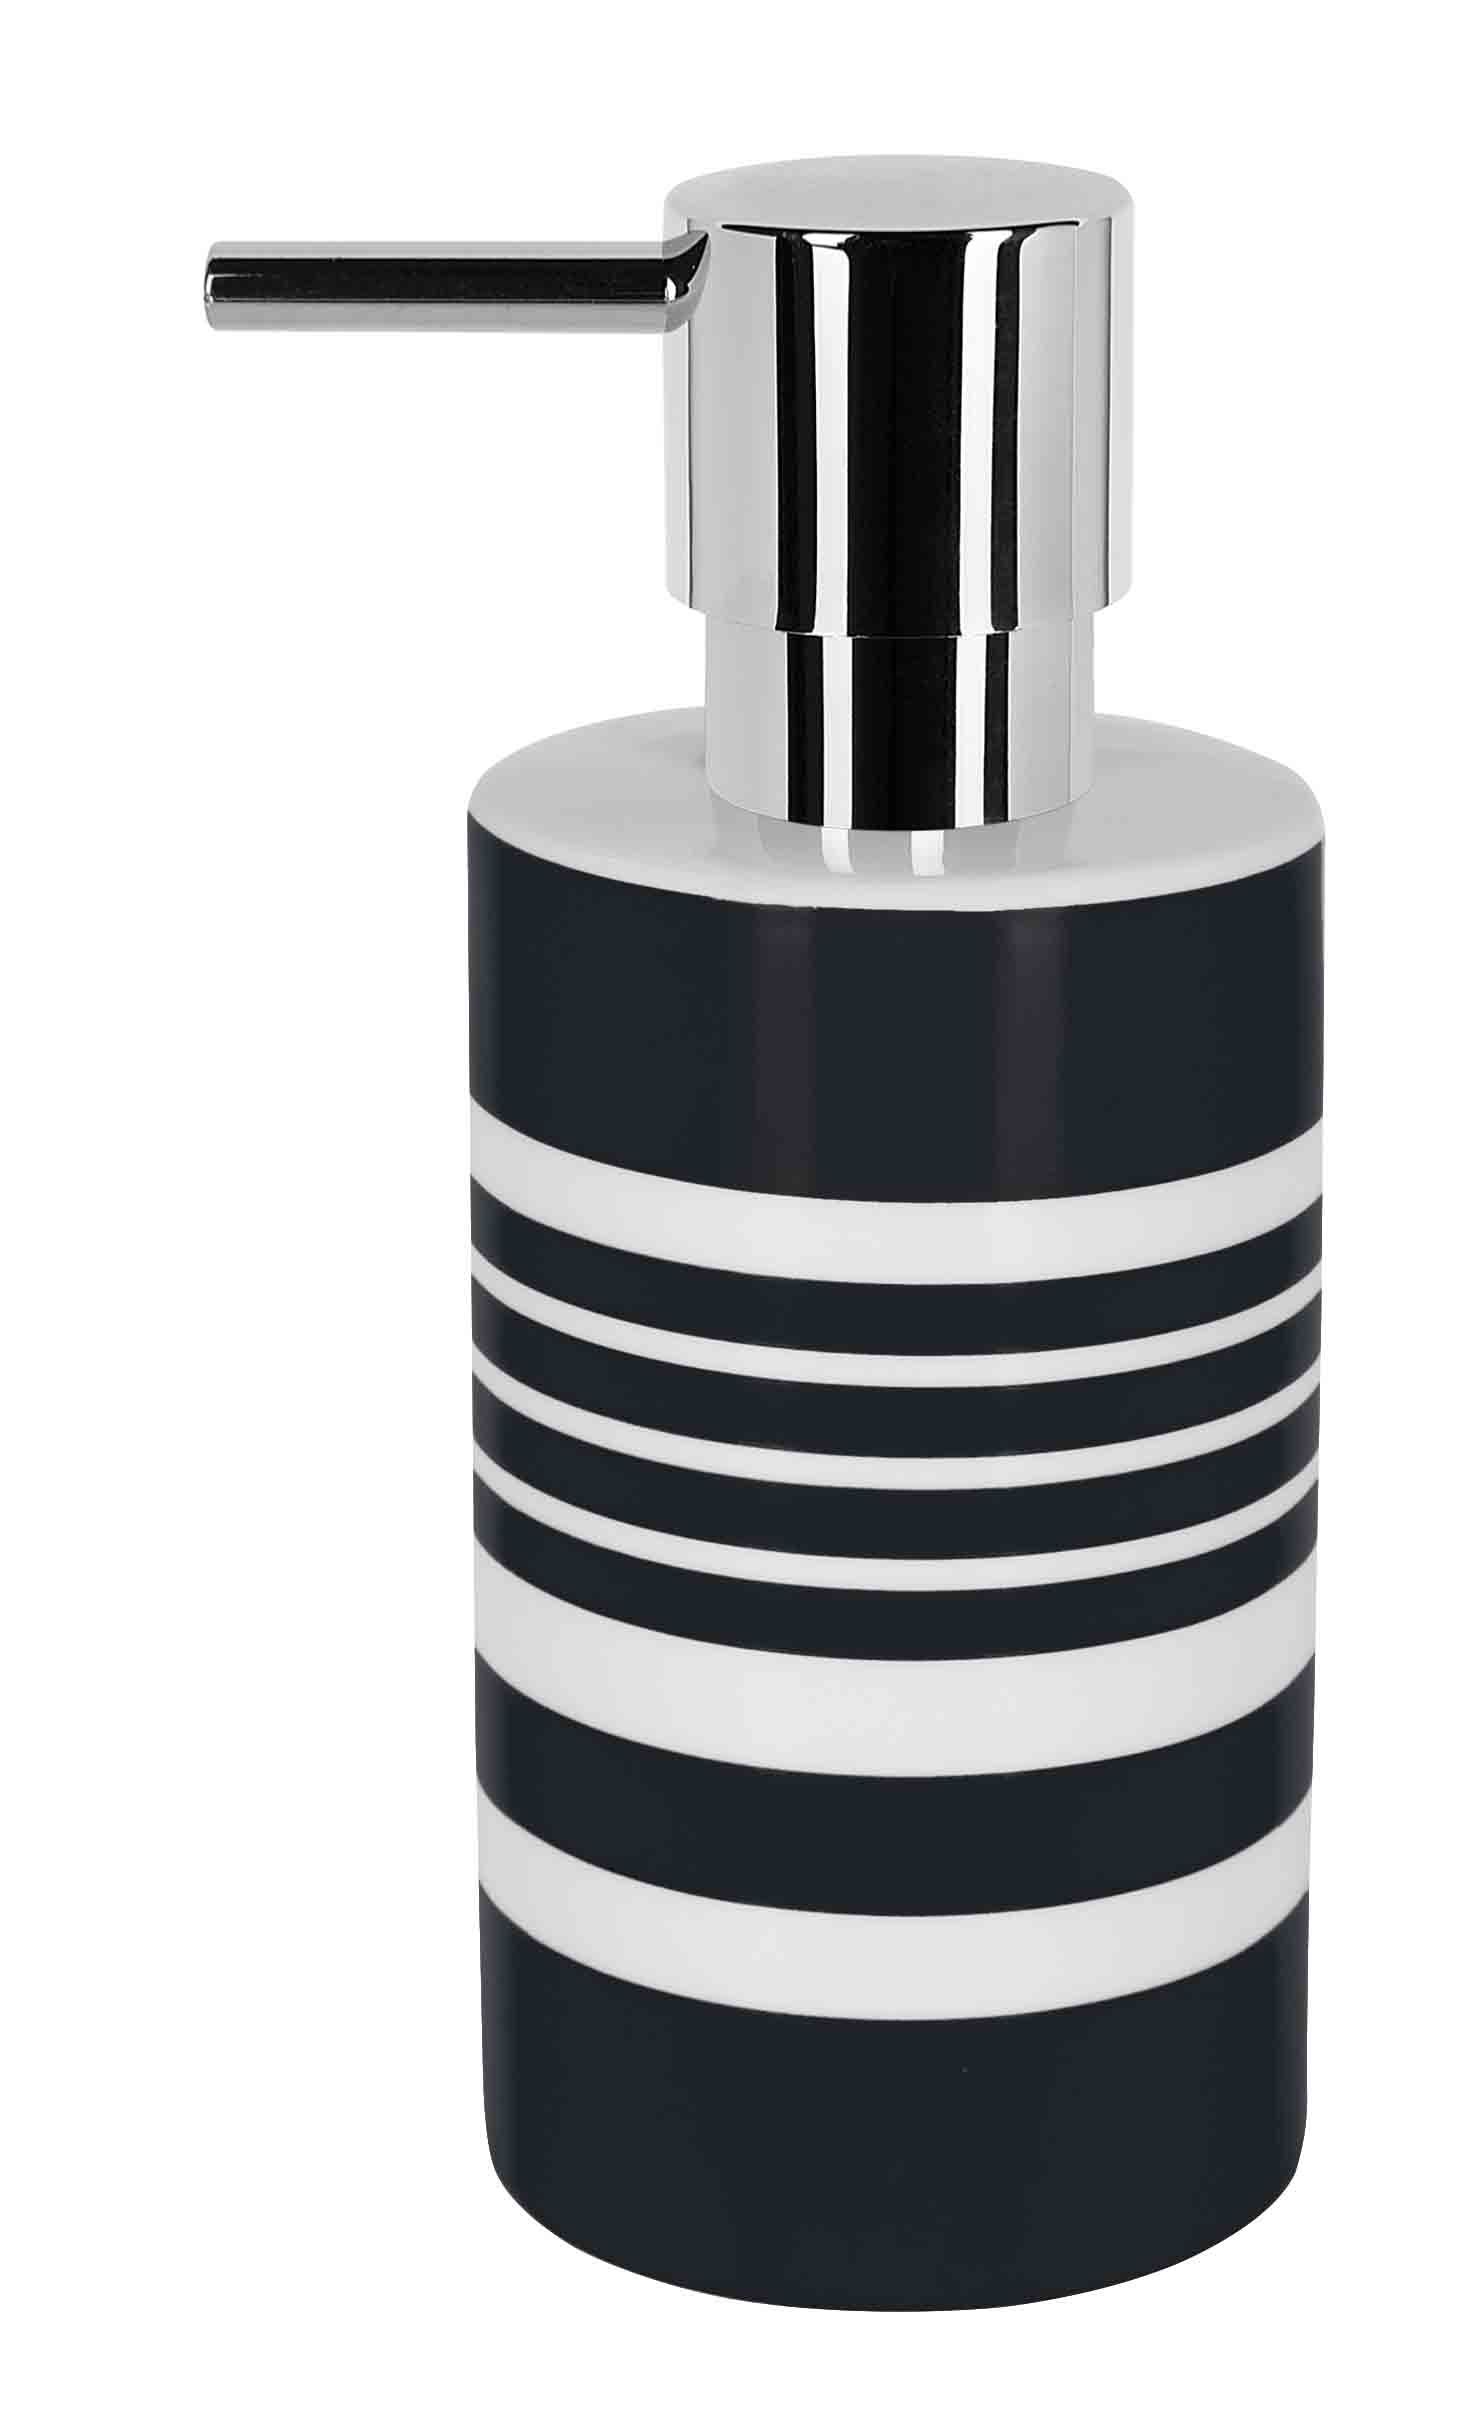 Spirella Black Tube Soap Dispenser | School Projects | Pinterest